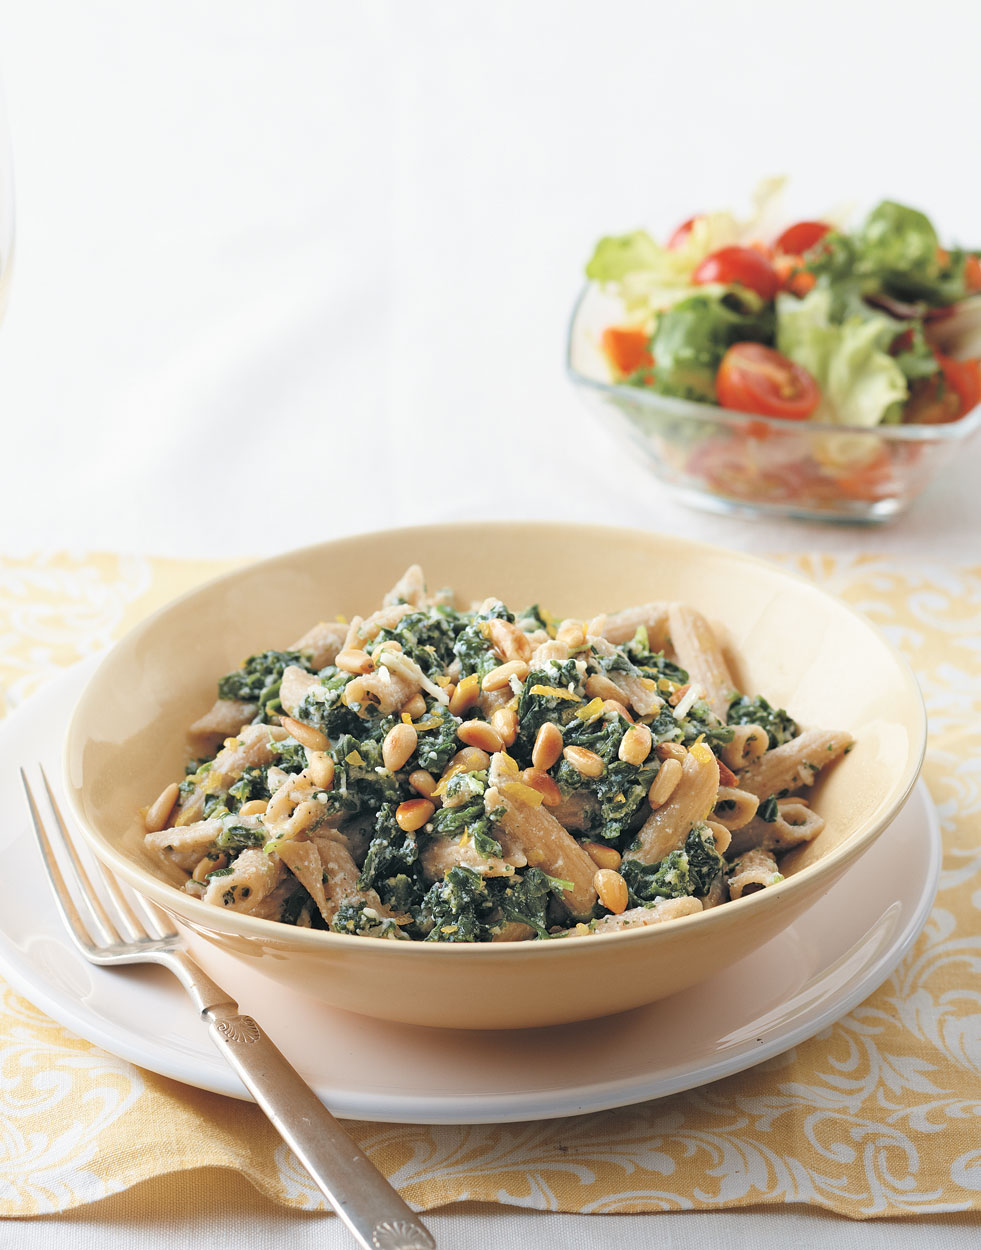 Creamy Spinach & Penne Pasta